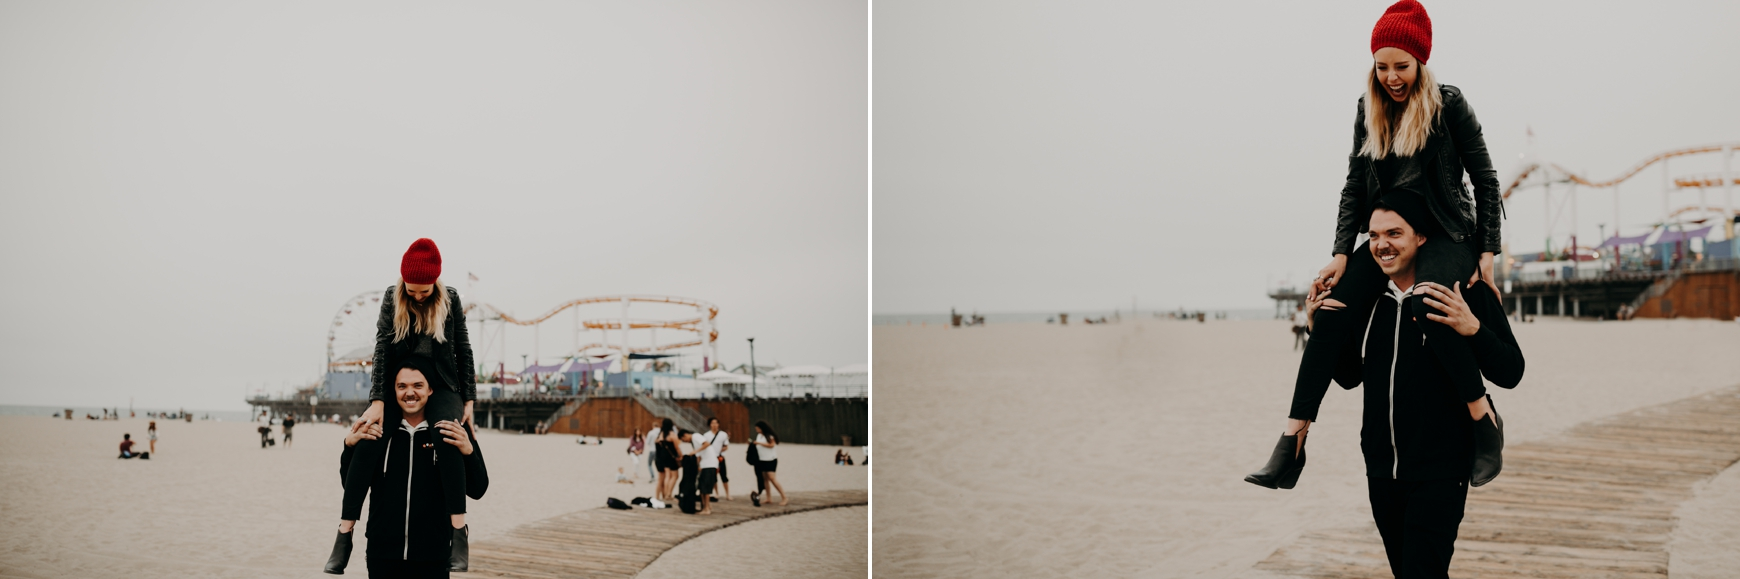 Santa Monica Pier Engagement Loni & Duke Emily Magers Photography-211.jpg